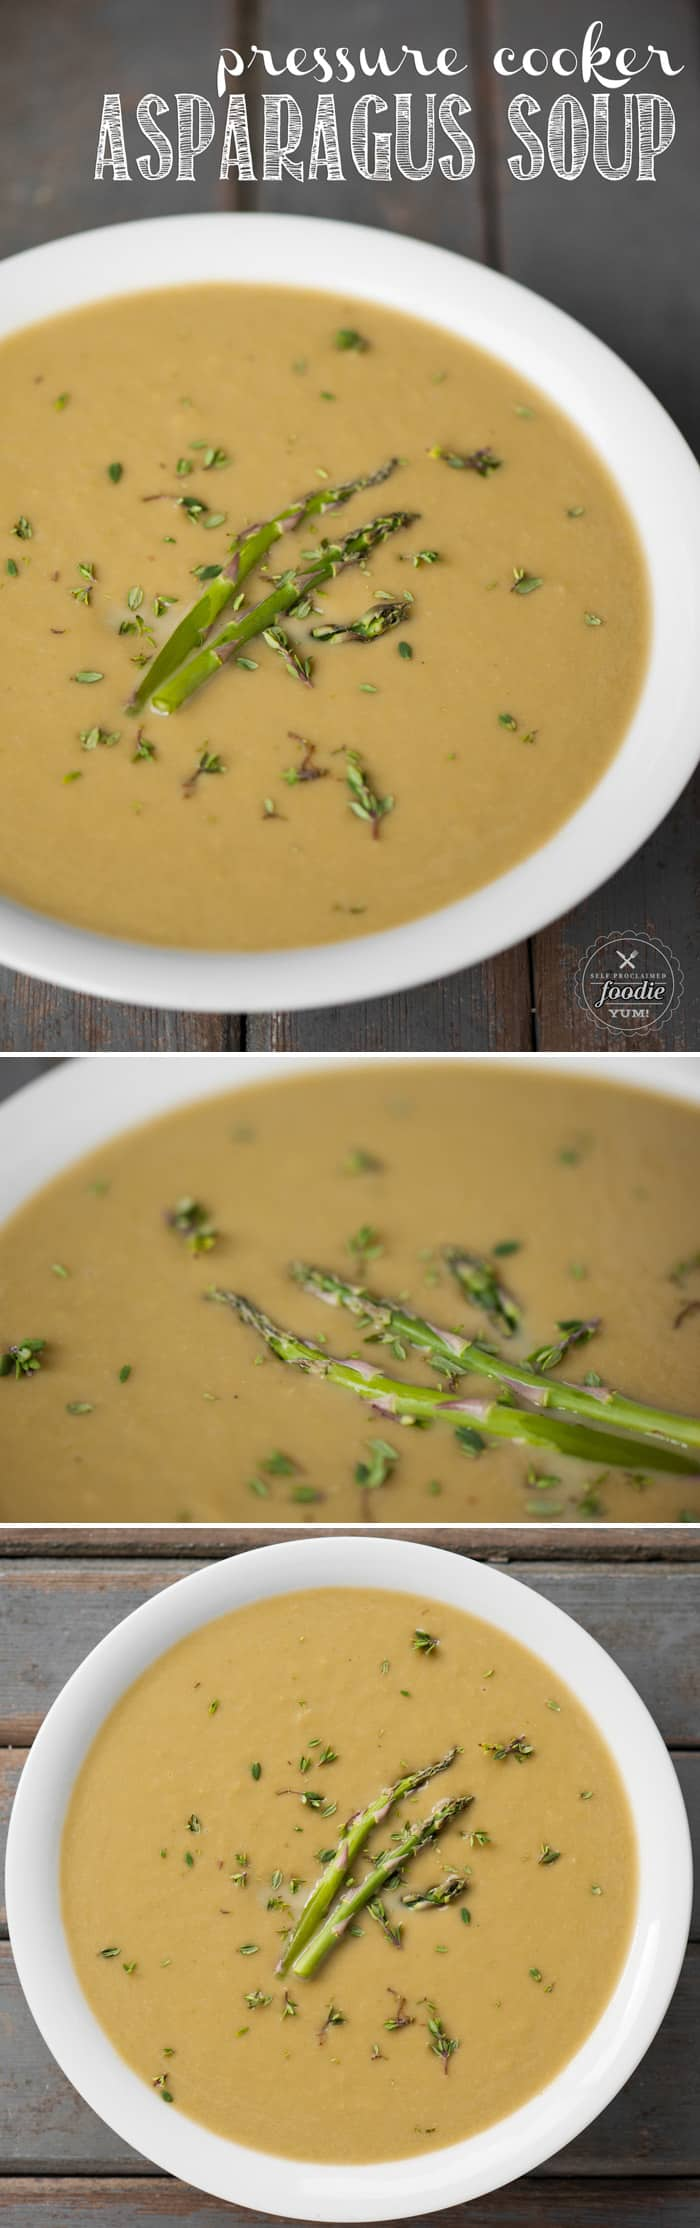 Pressure Cooker Asparagus Soup is a light and healthy spring or summer meal that takes only minutes to prepare and cook. Serve it as a meal or as a side!